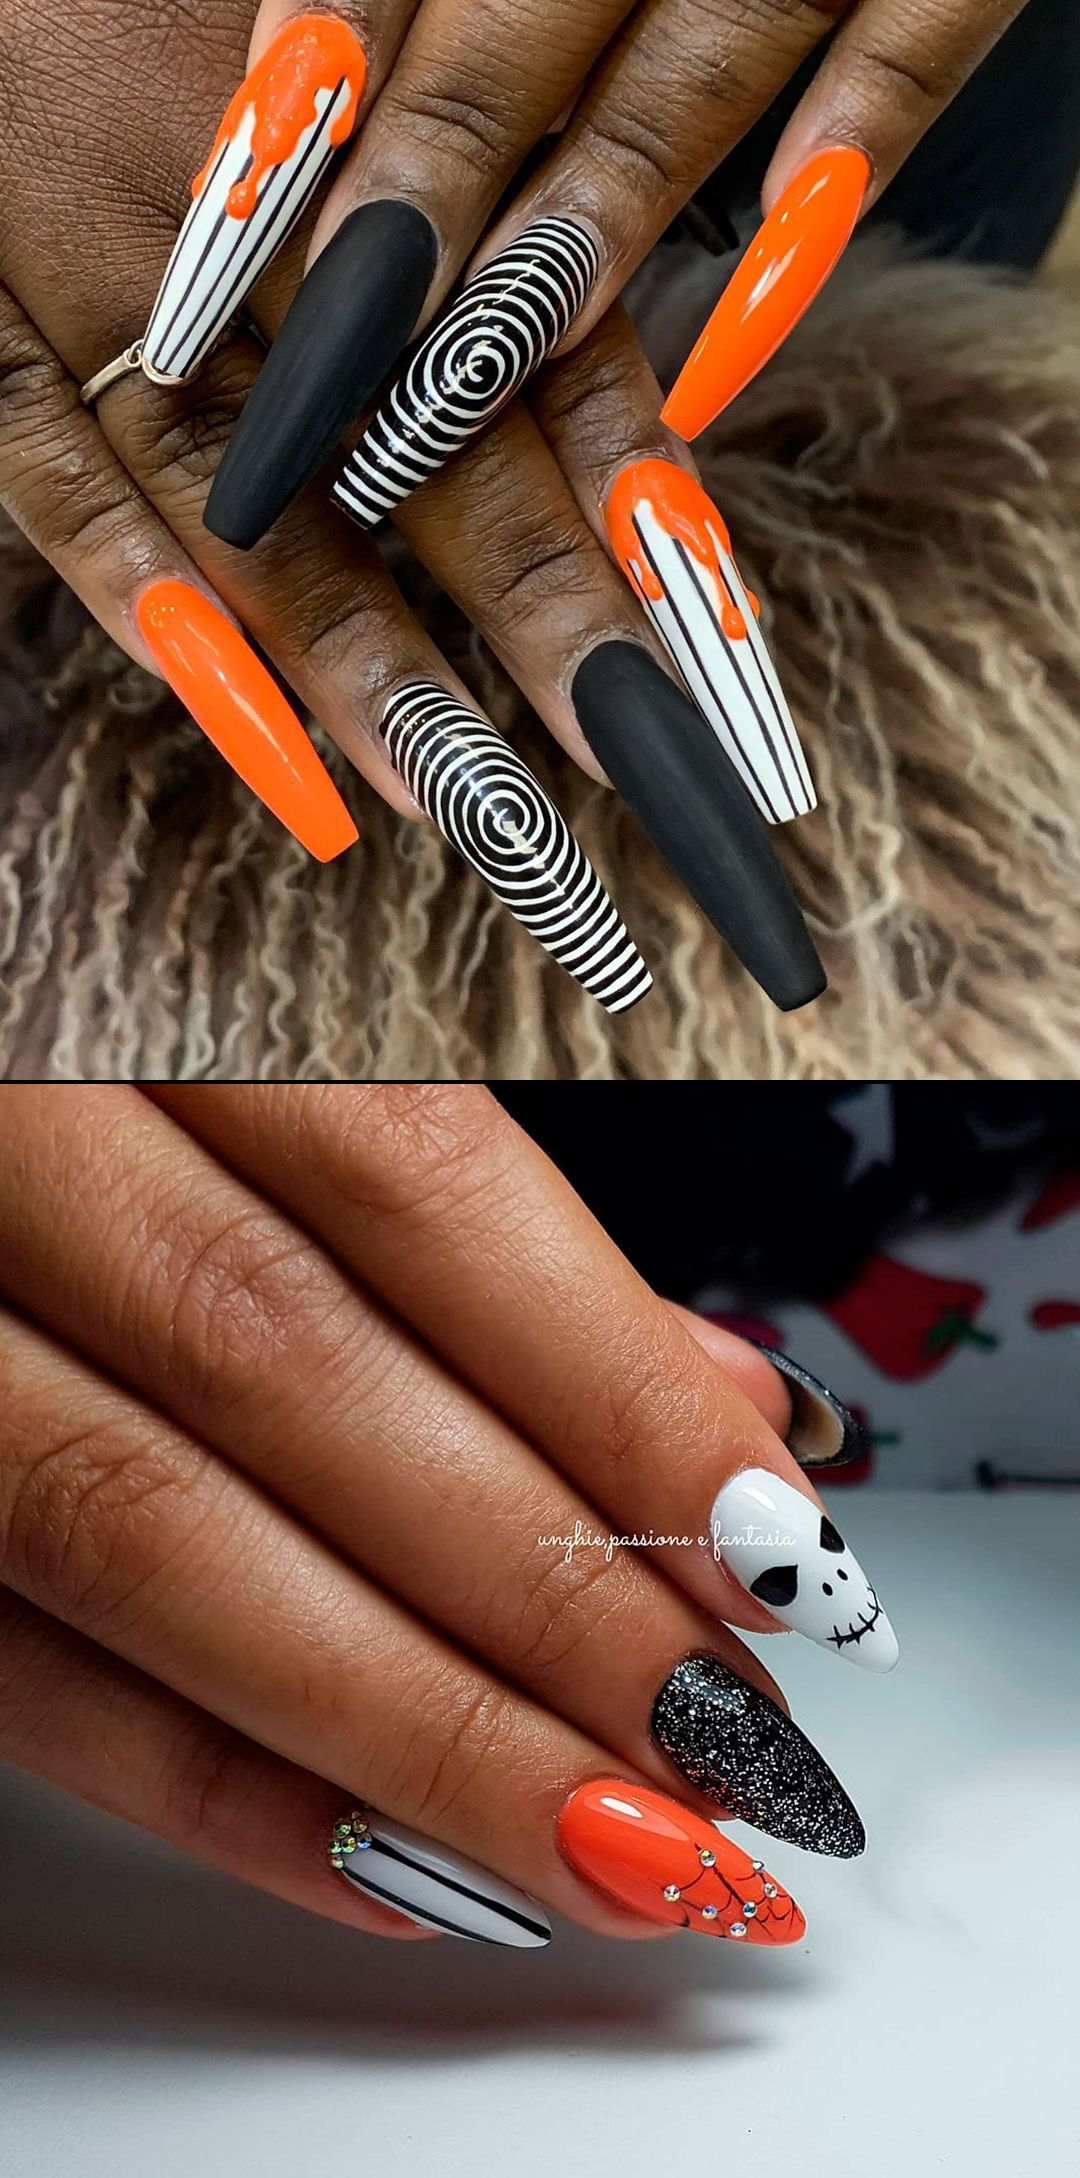 Pin By Michelle On Nails Halloween Nails Coffin Shape Nails Pumpkin Nails